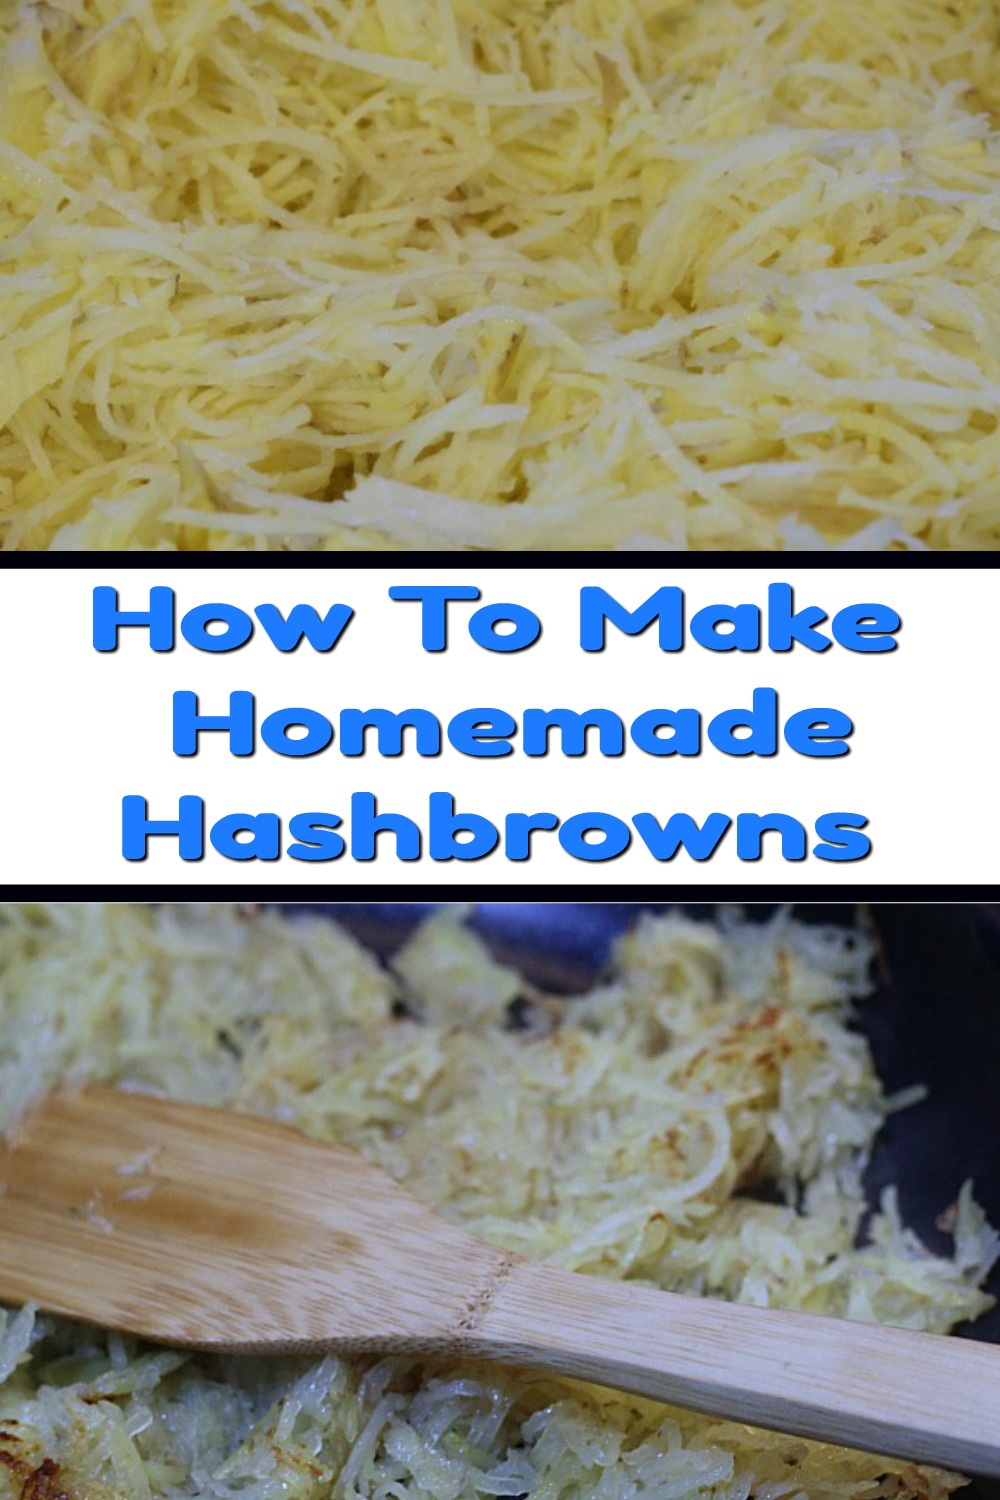 It's so easy once you know How To Make Homemade Hashbrowns. Use potatoes from the farm stand or grocery store to easily make up the homemade hashbrowns!